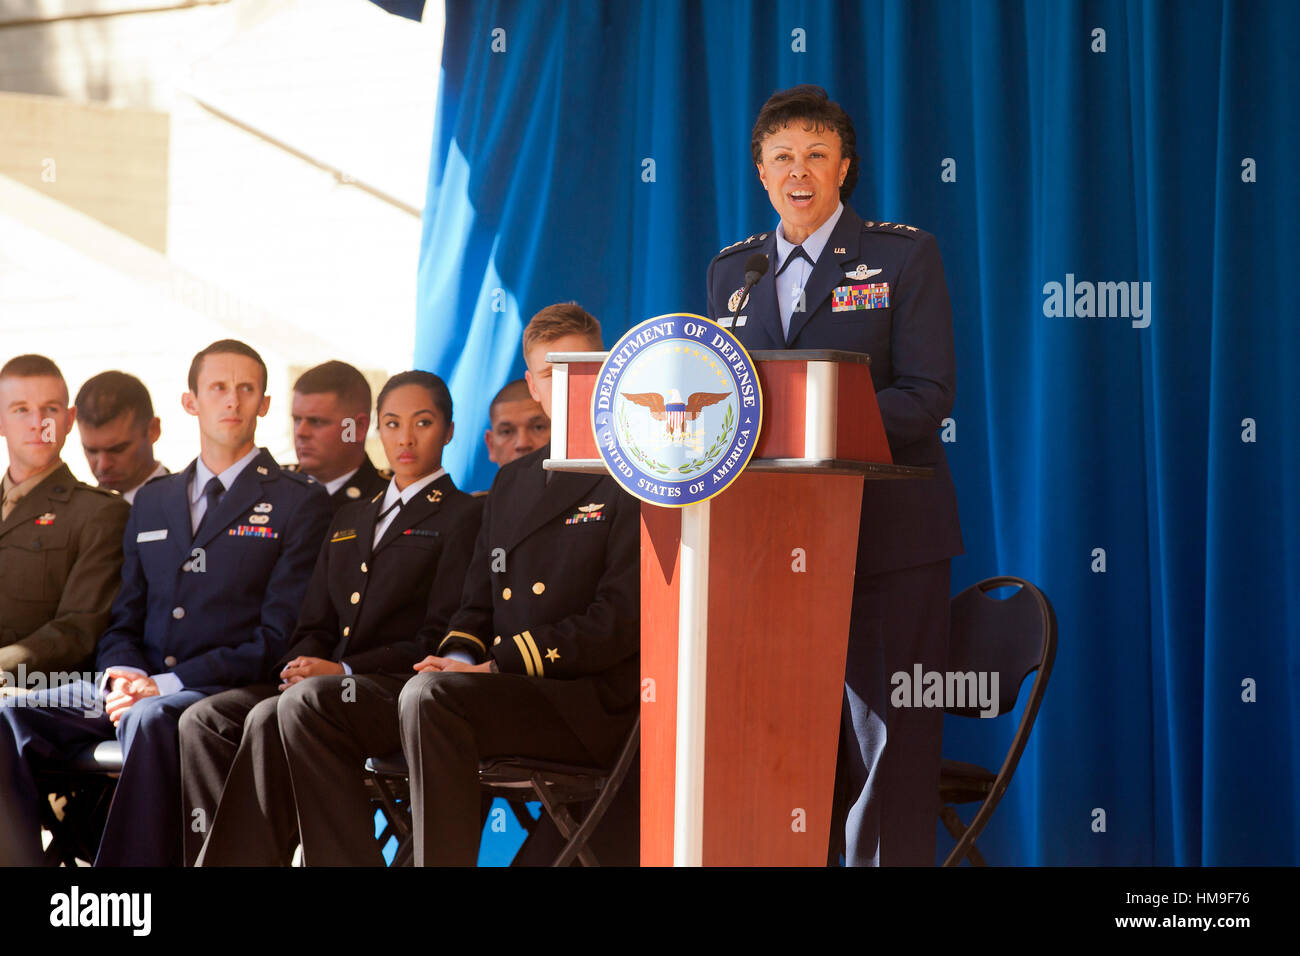 Washington, DC, Oct. 03, 2016: Lt. Gen. Stayce D. Harris honors 2016 military Olymians and Paralympians at the Pentagon - Stock Image